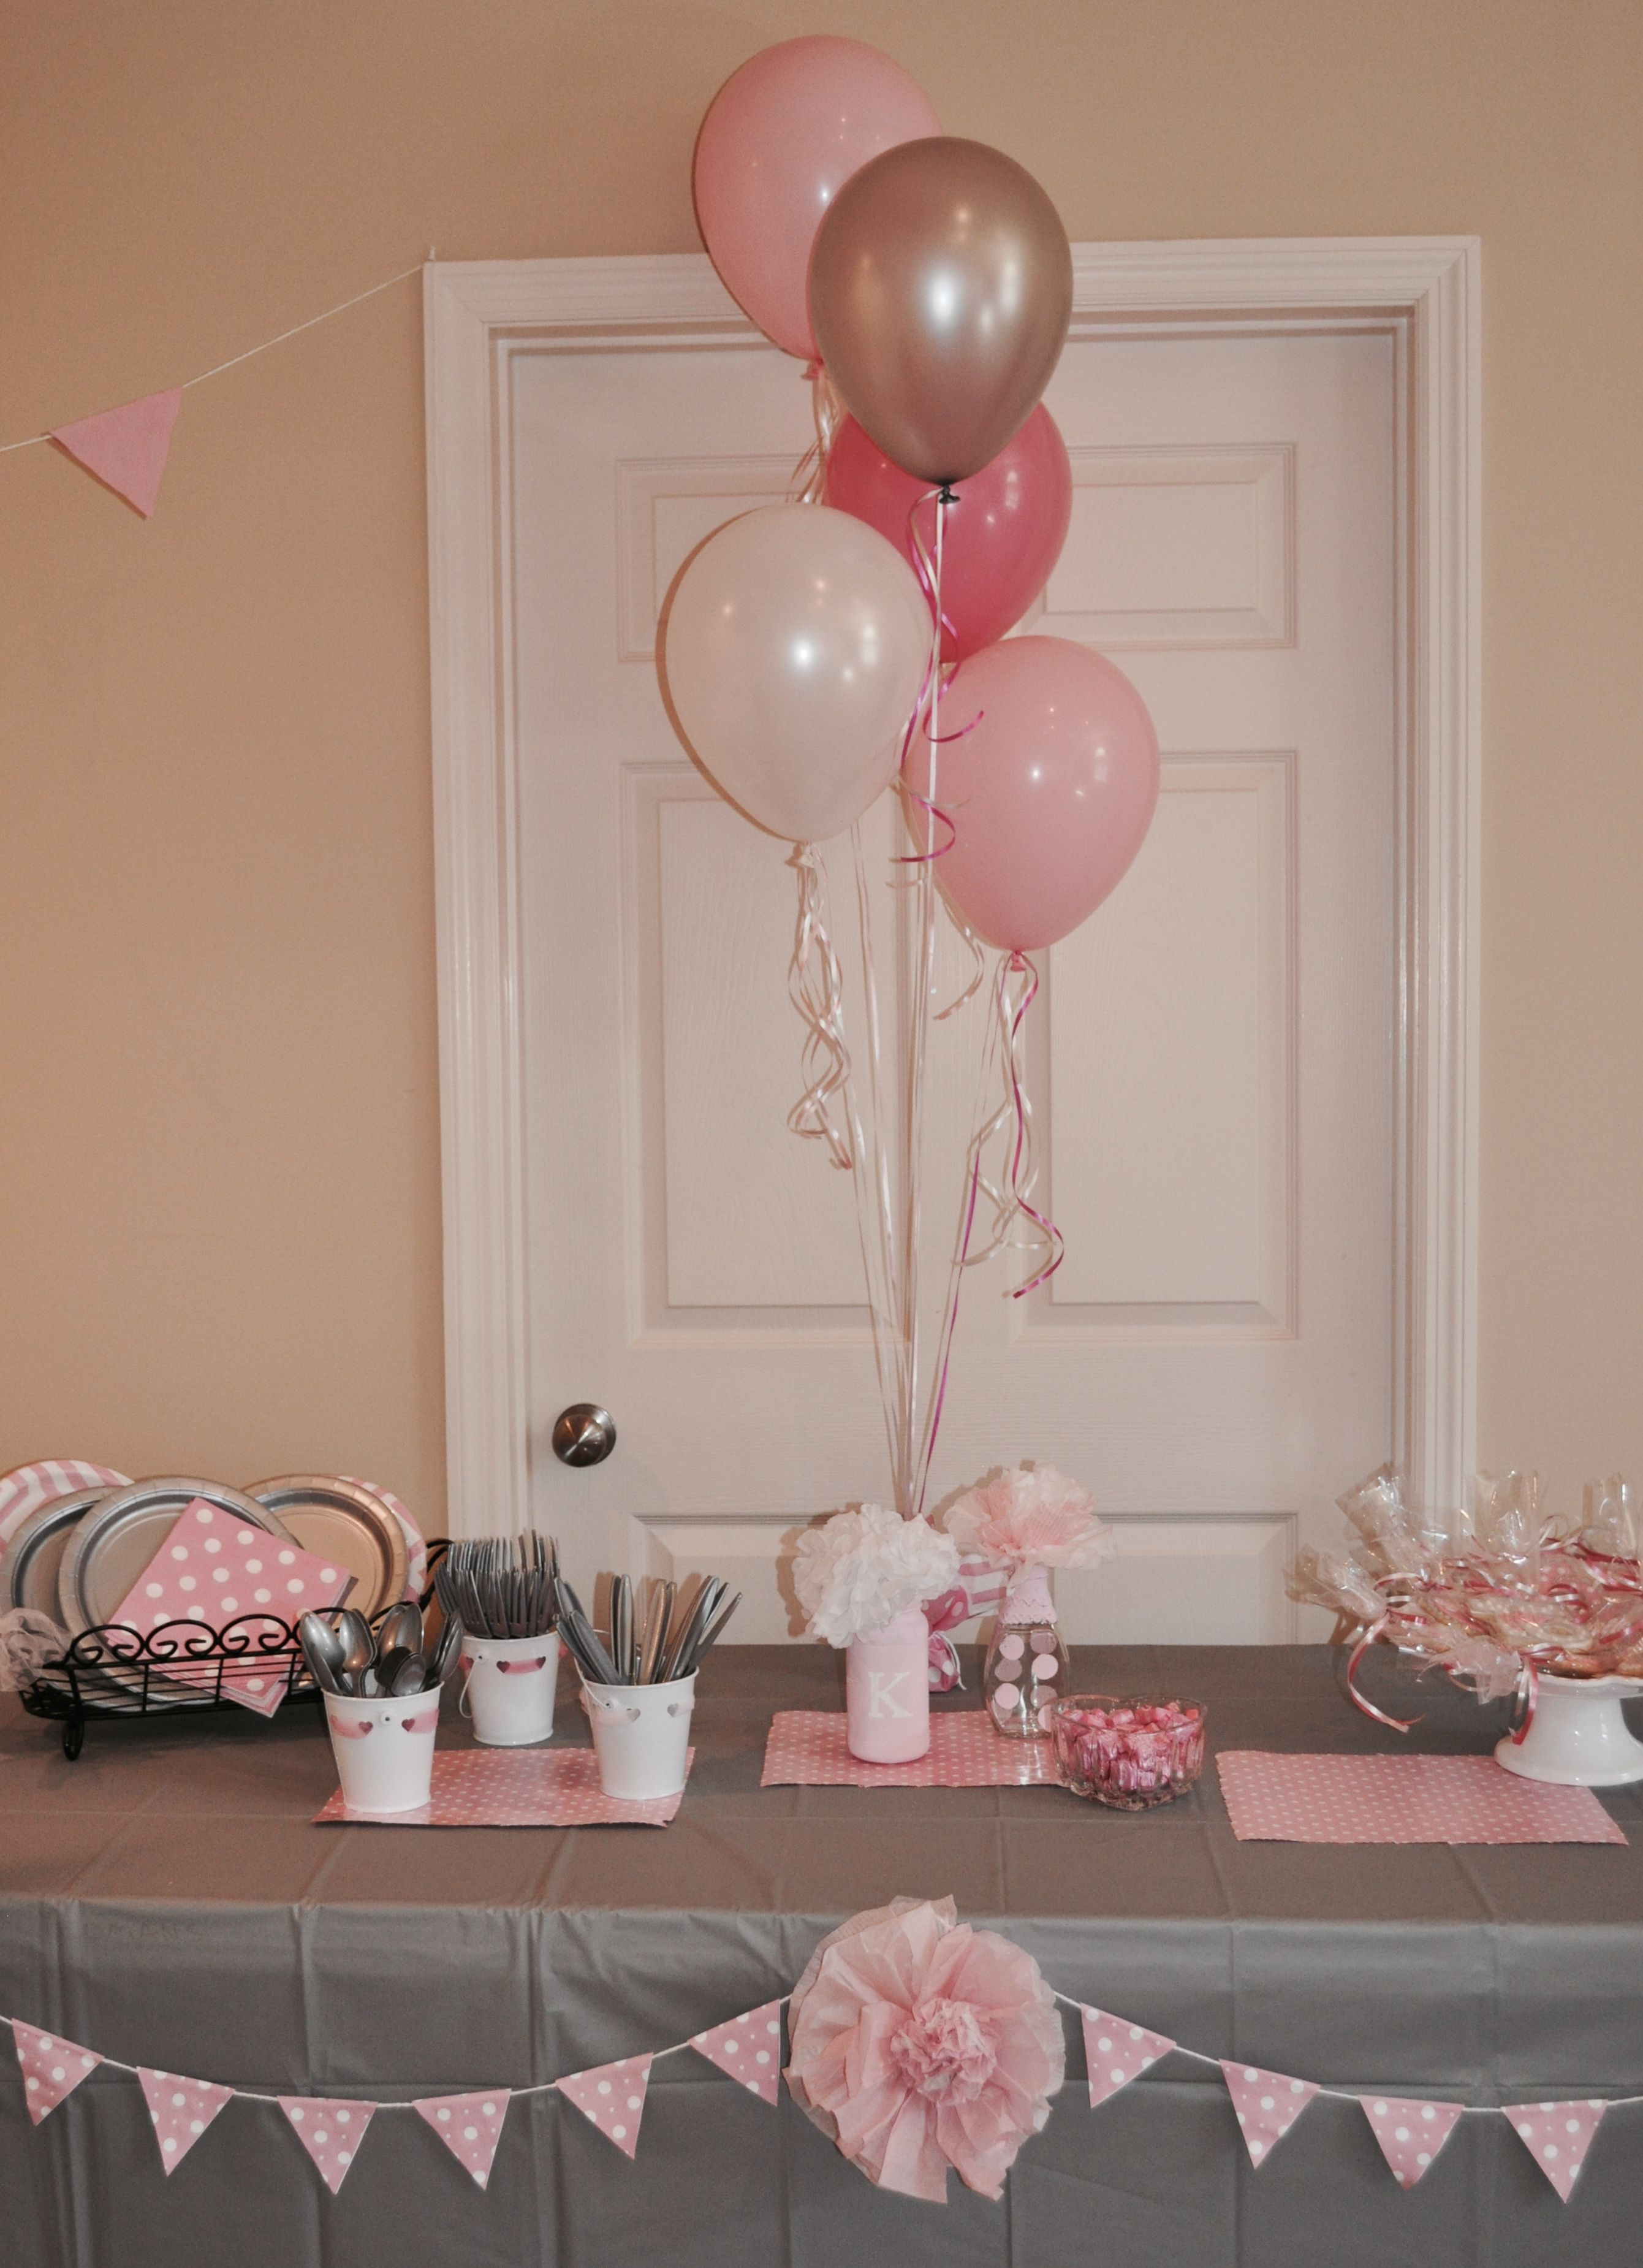 Sweet 16 slumber party with pink, gray and white color scheme.